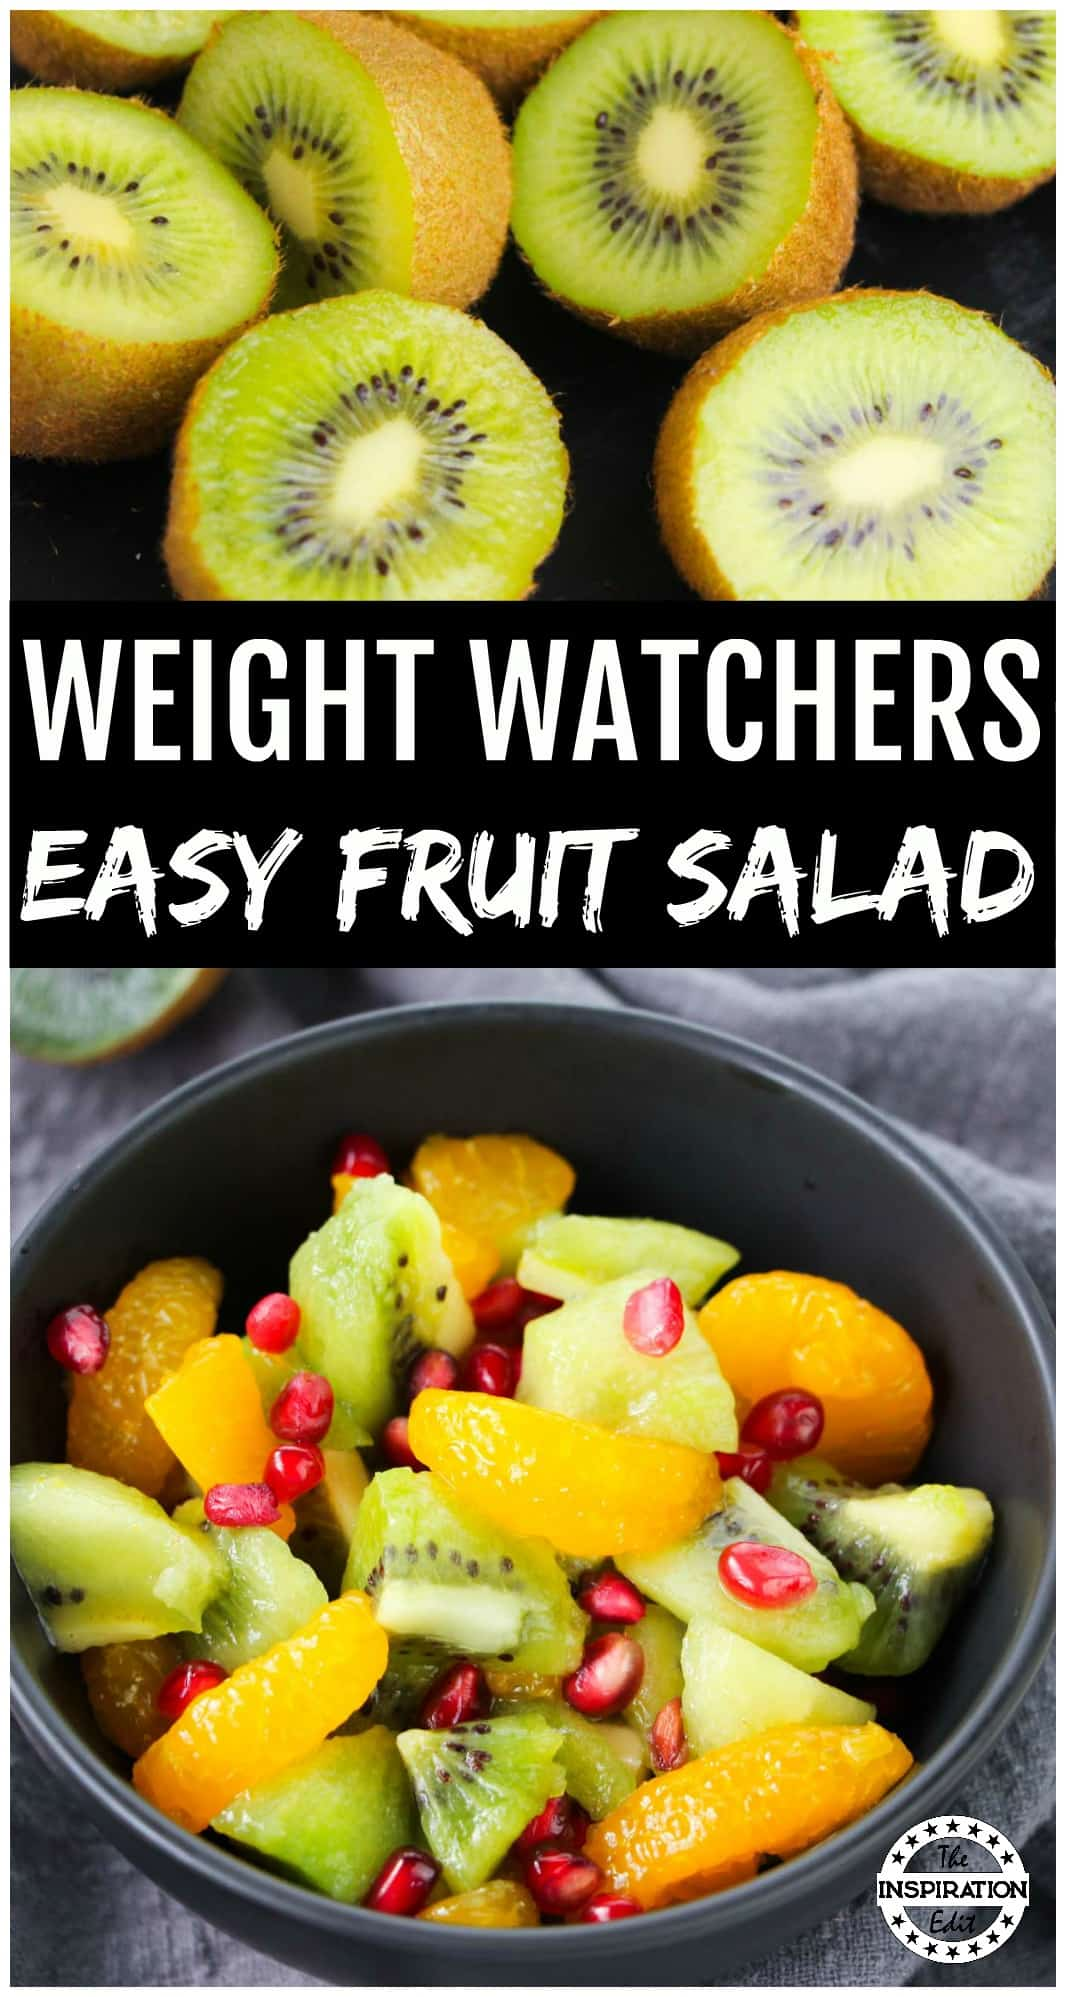 Weight Watchers Fruit Salad